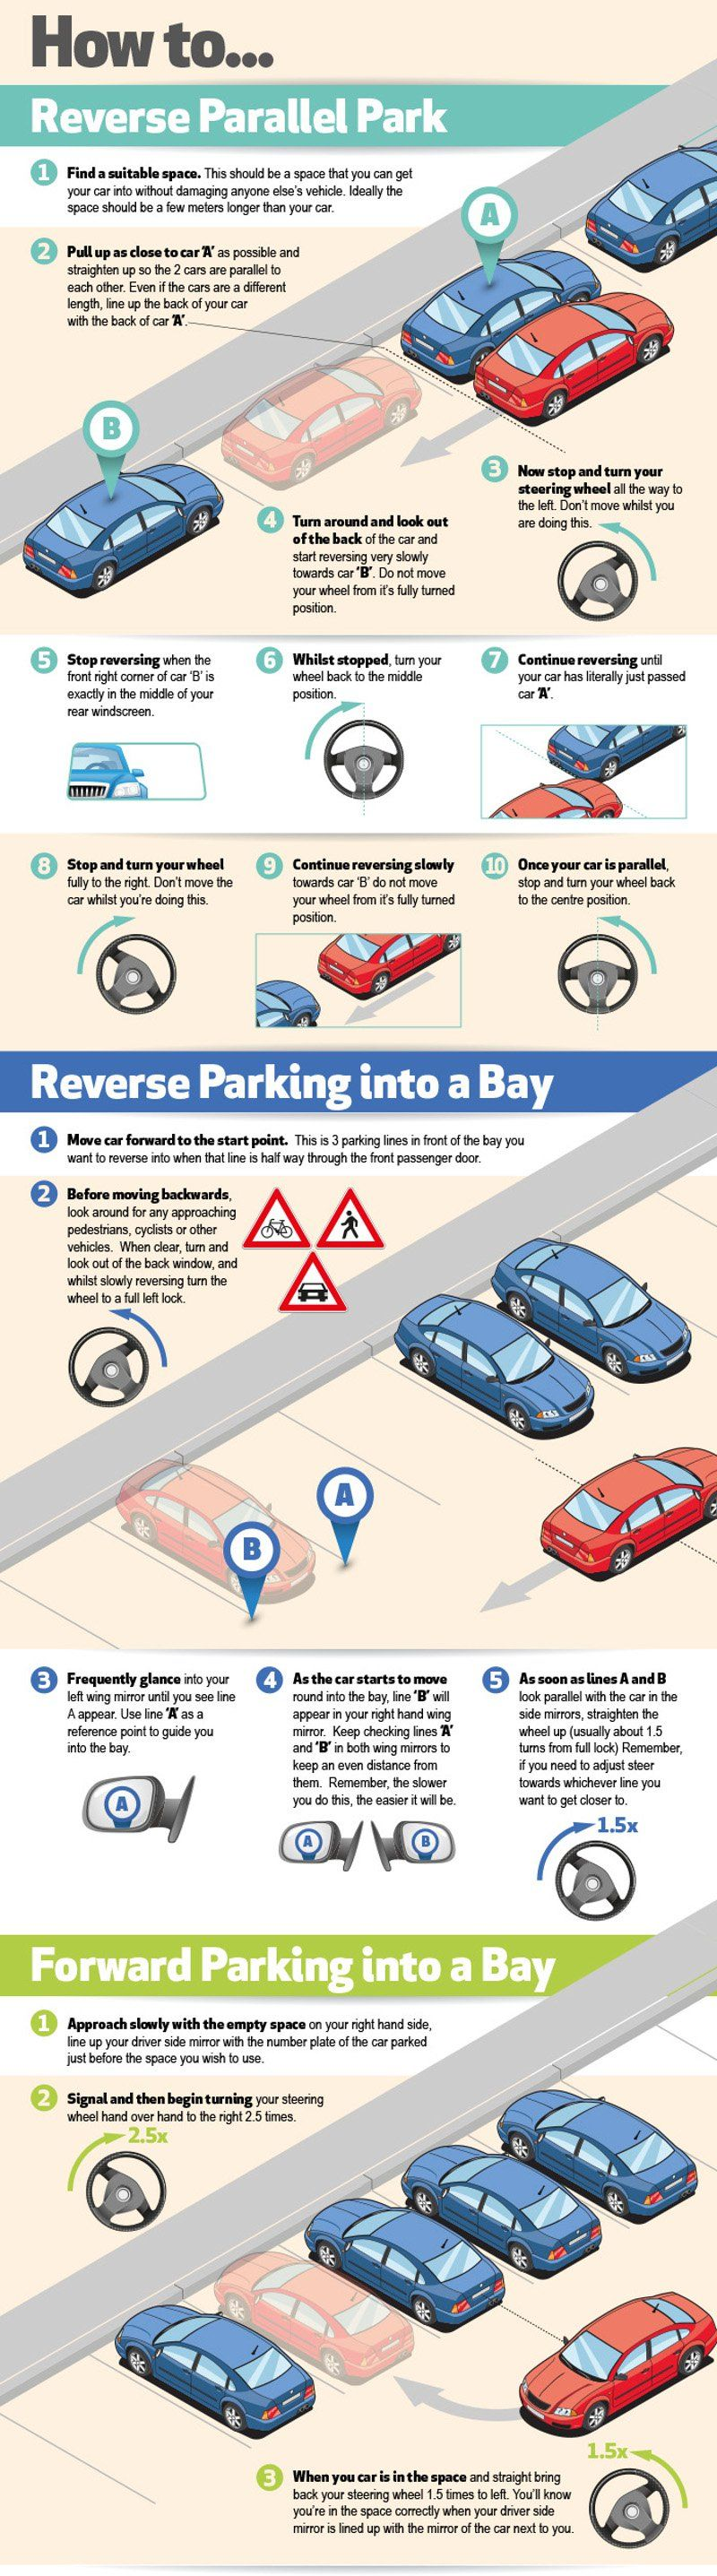 Pin by Andreea on Auto Car hacks, Driving tips, Parallel